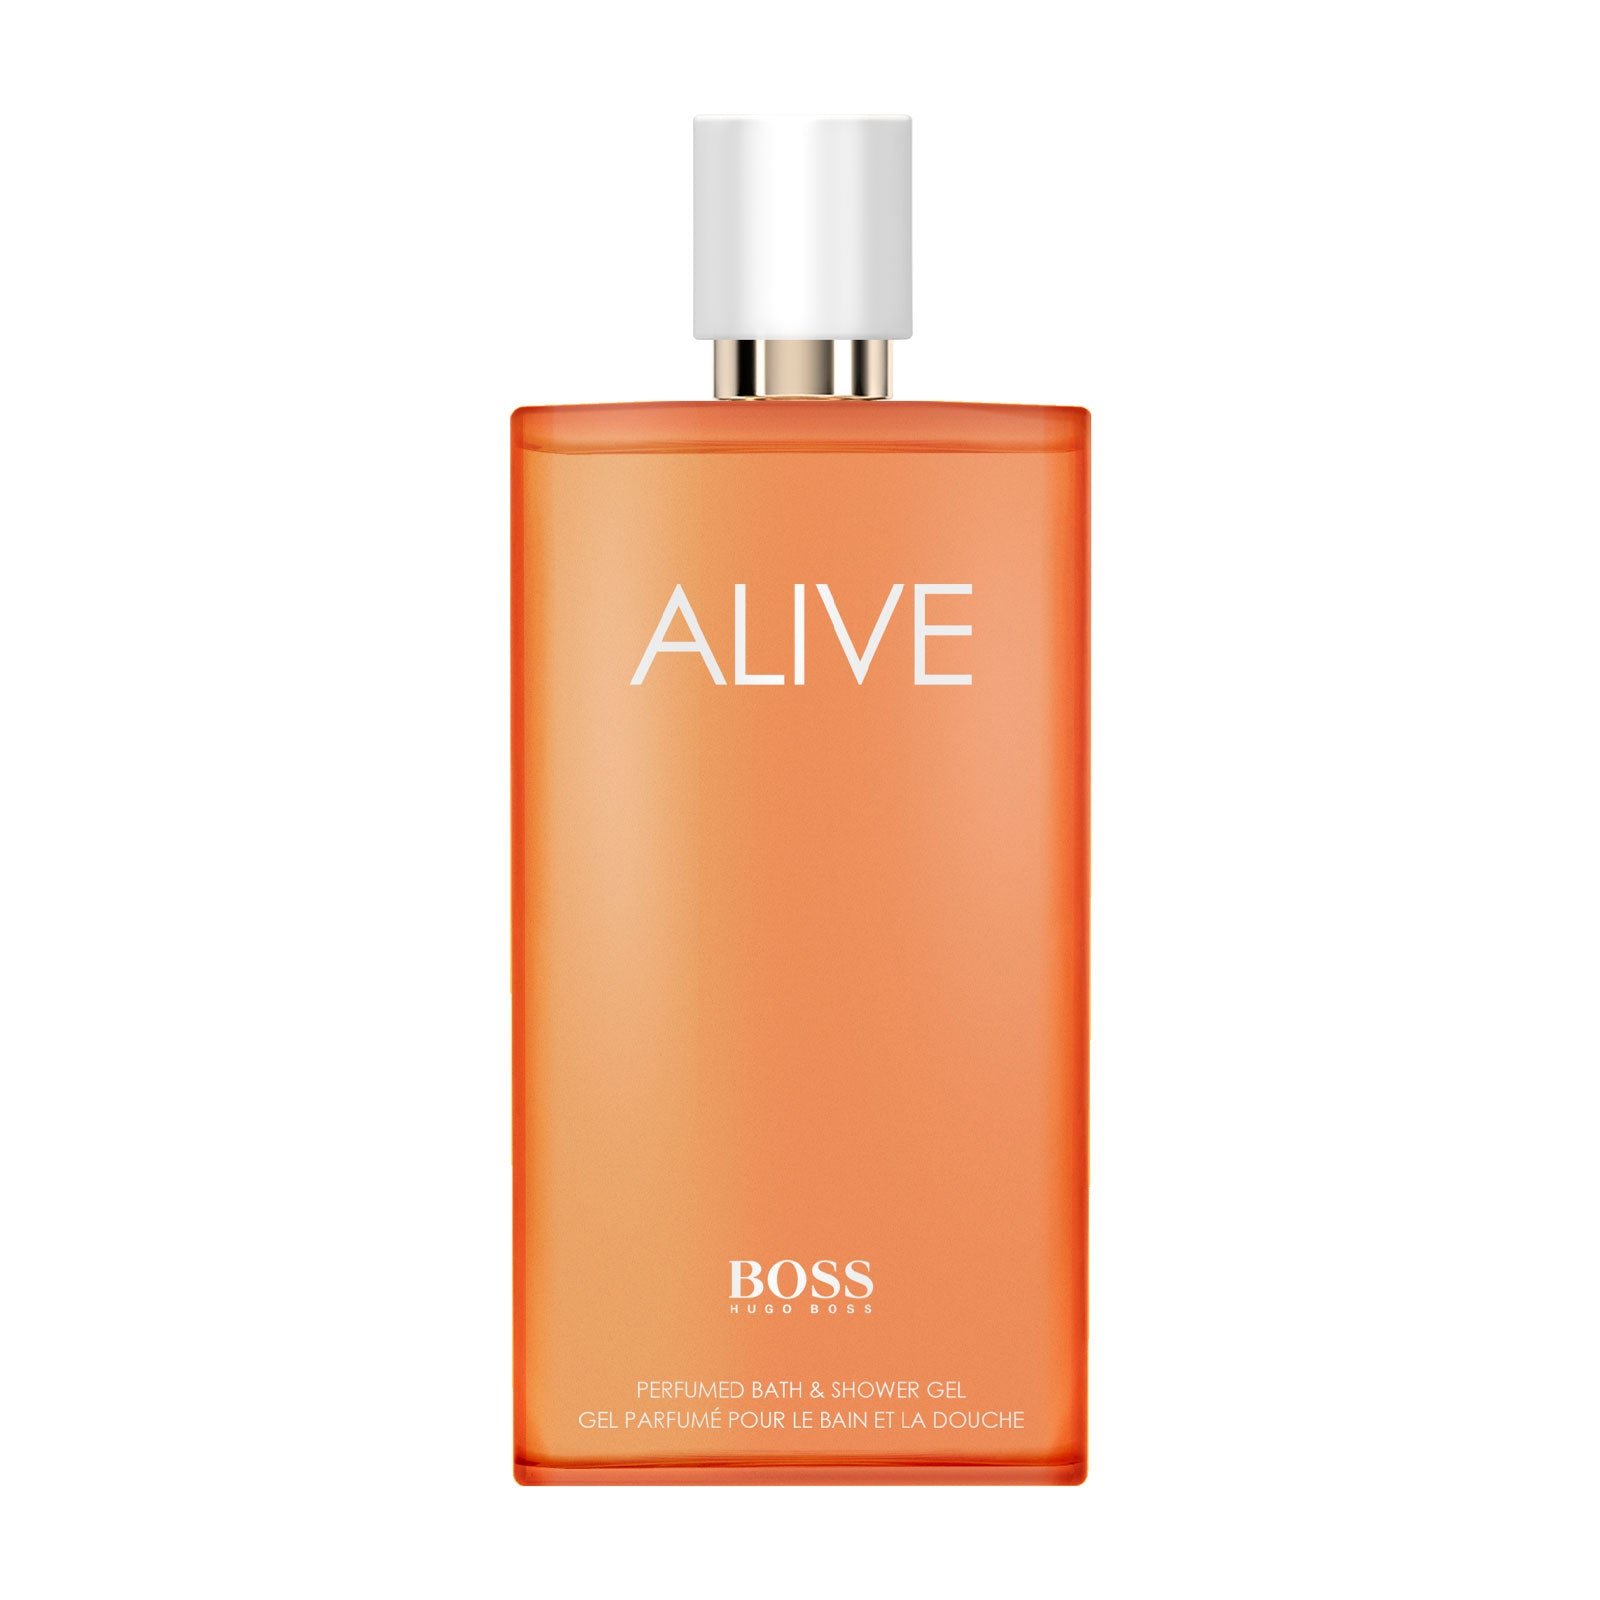 Hugo Boss BOSS Alive Bath & Shower Gel For Women 200ml